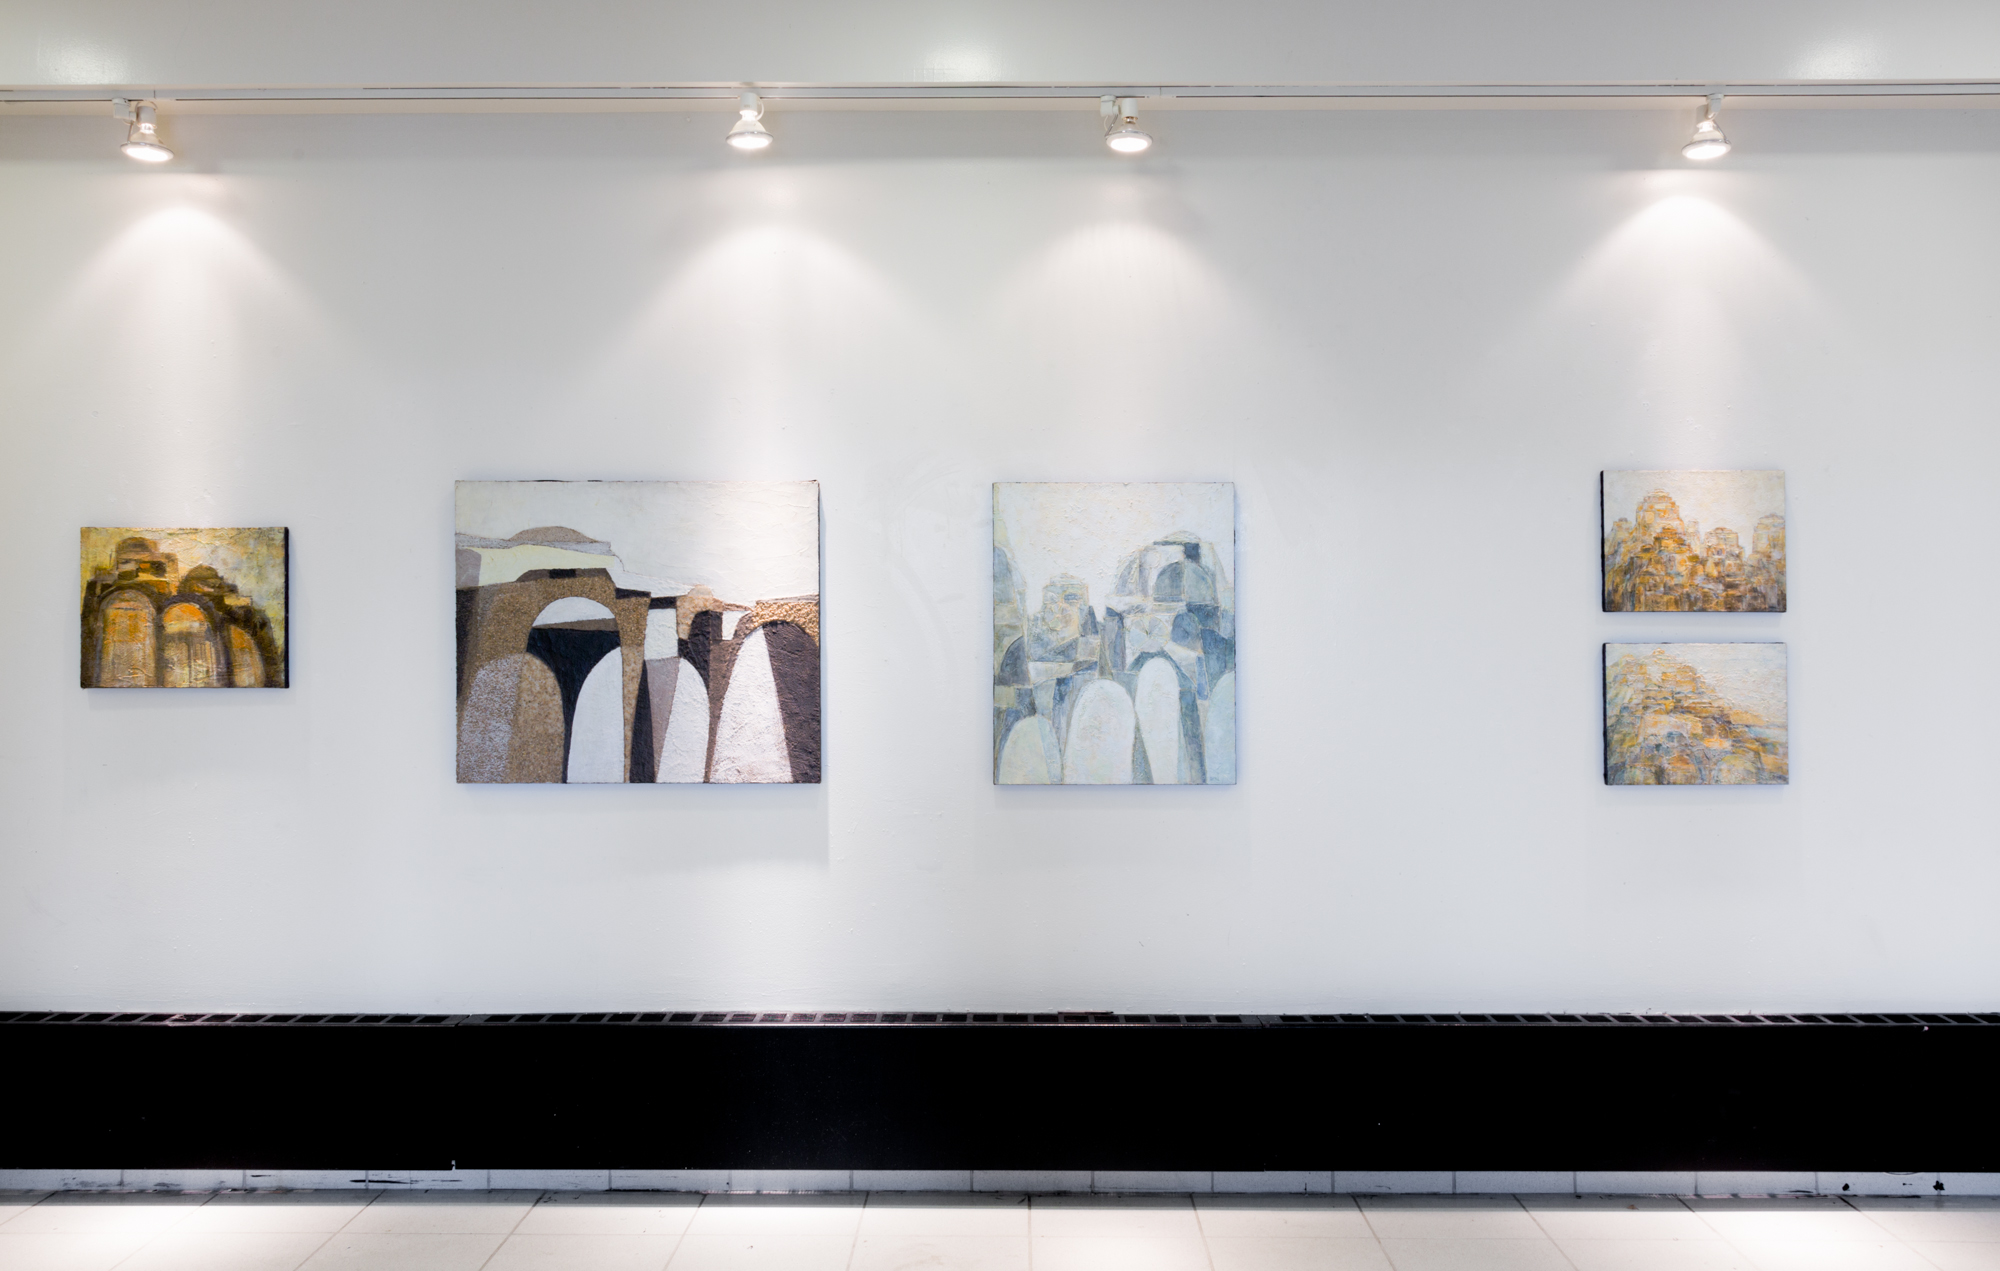 (Left to right) Fred Terna, Observing Easy Strides , 1972, Acrylic on canvas, 16 x 20 inches; Second Protection of Precarious Precepts , 1970, Acrylic on canvas, 30 x 36 inches; Lifted Gates and Doors , 1971, Acrylic and aggregates on canvas, 30 x 24 inches;(Top to bottom) The Day After the Trumpet , 1978,Acrylic on canvas, 14 x 18 inches; An Abundance of Gates , 1978,Acrylic on canvas, 14 x 18 inches